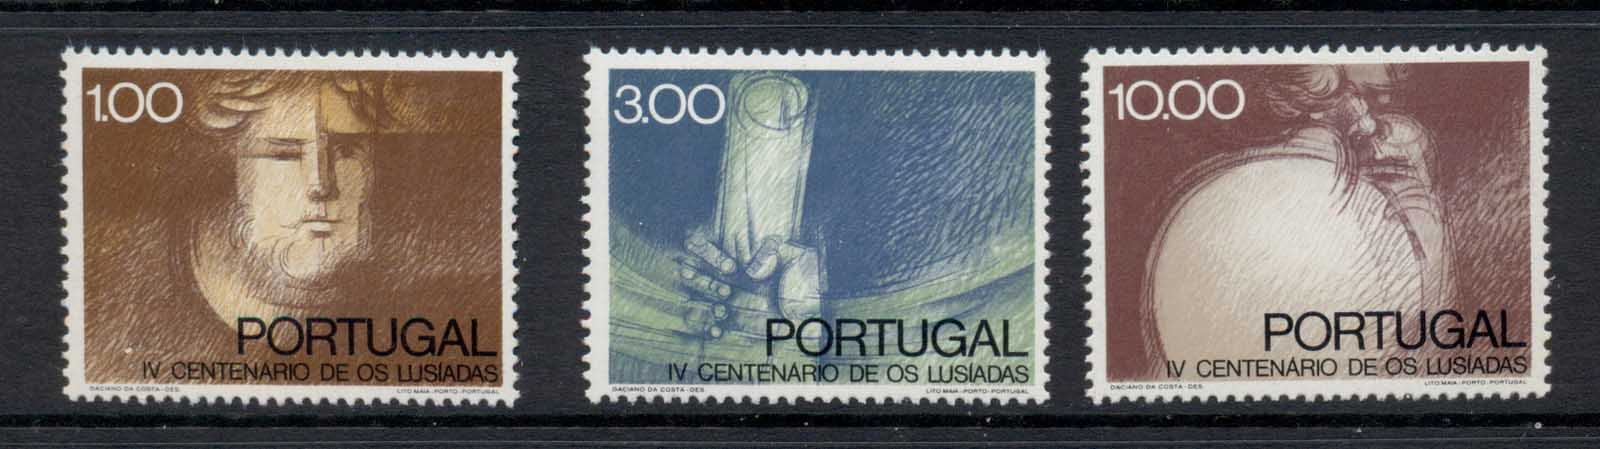 Portugal 1972 Lusiads MLH